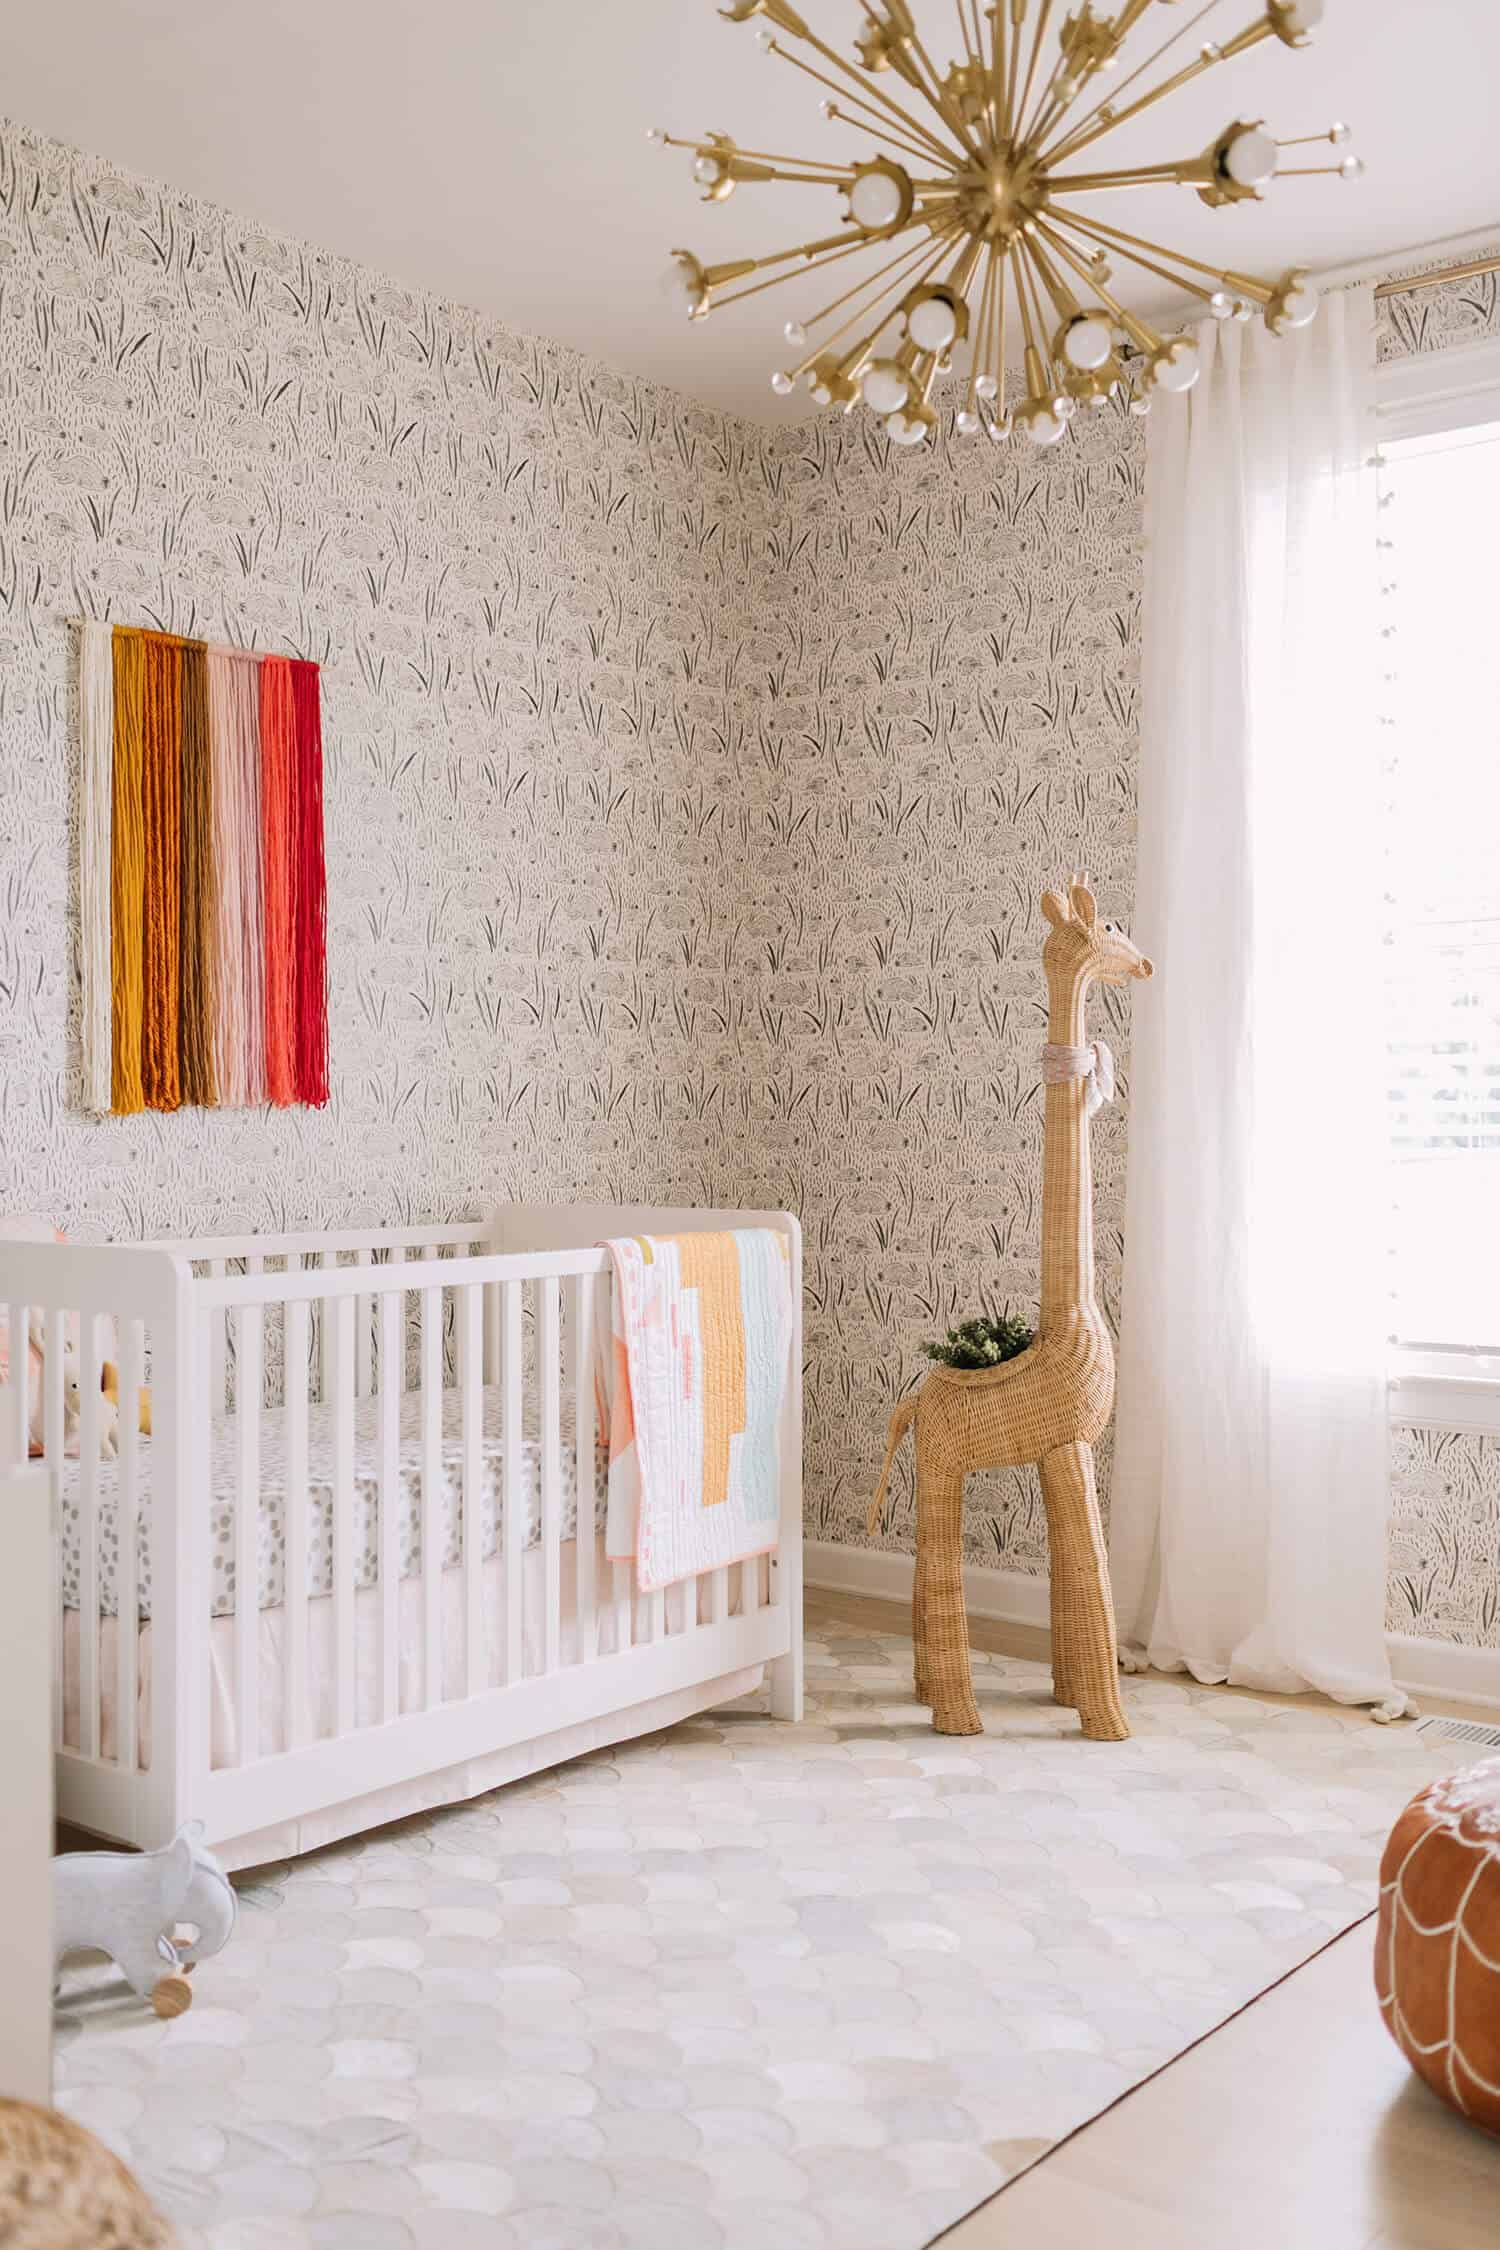 I Am So Hy To Share Our Daughter S Future Nursery With You All Today It Has Been My Favorite Design Project Ever As Soon Started